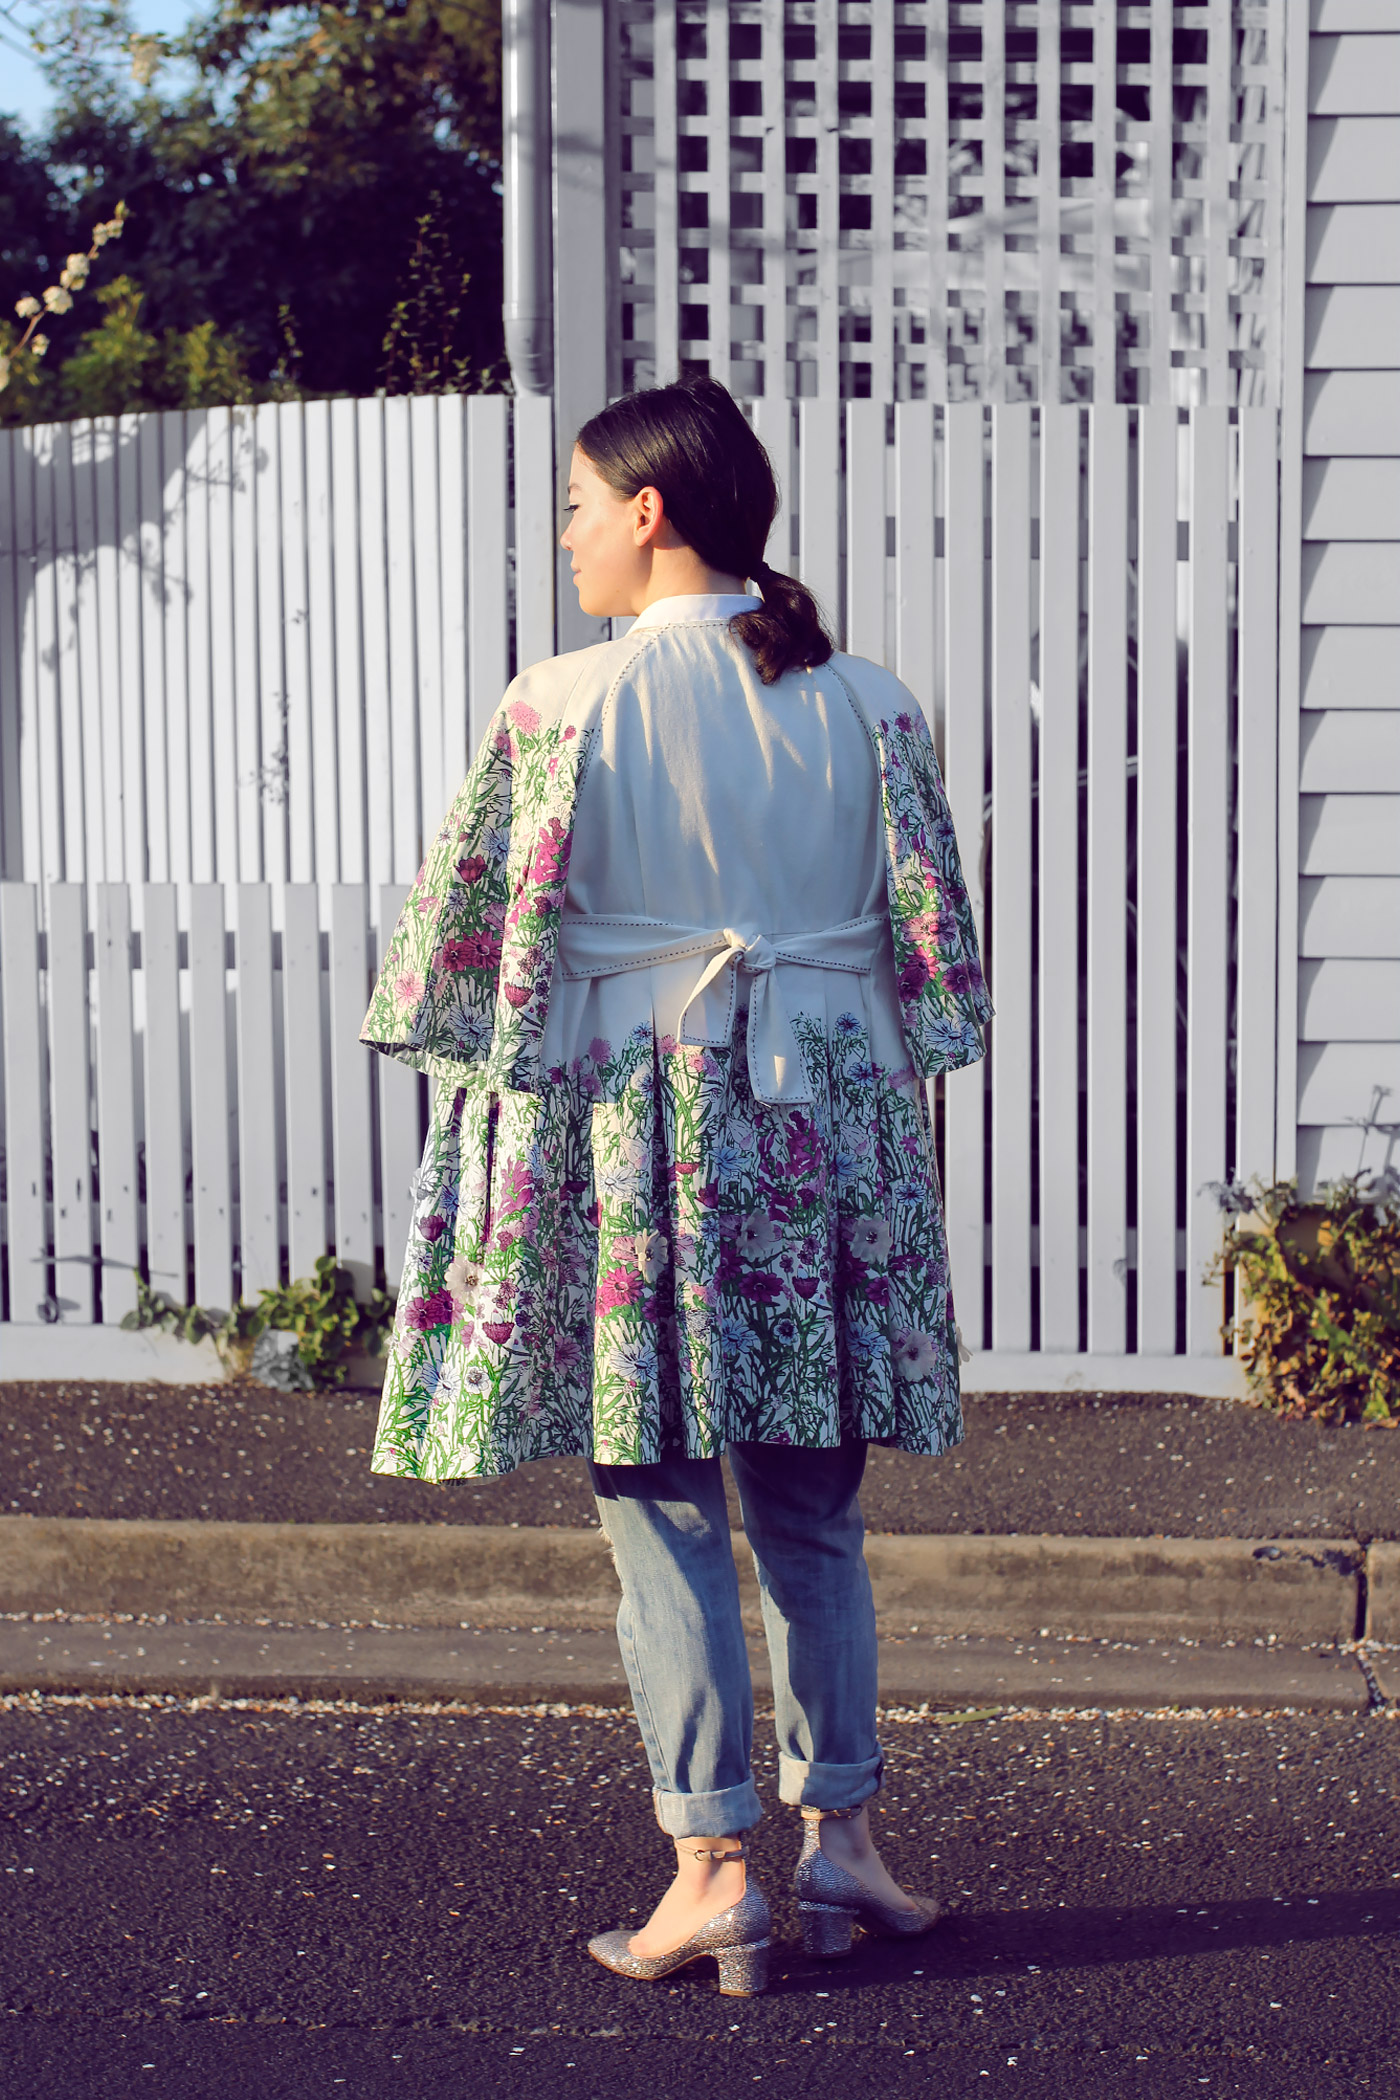 Spring Floral Outfit Coat Cacheral Lei Lady Lei